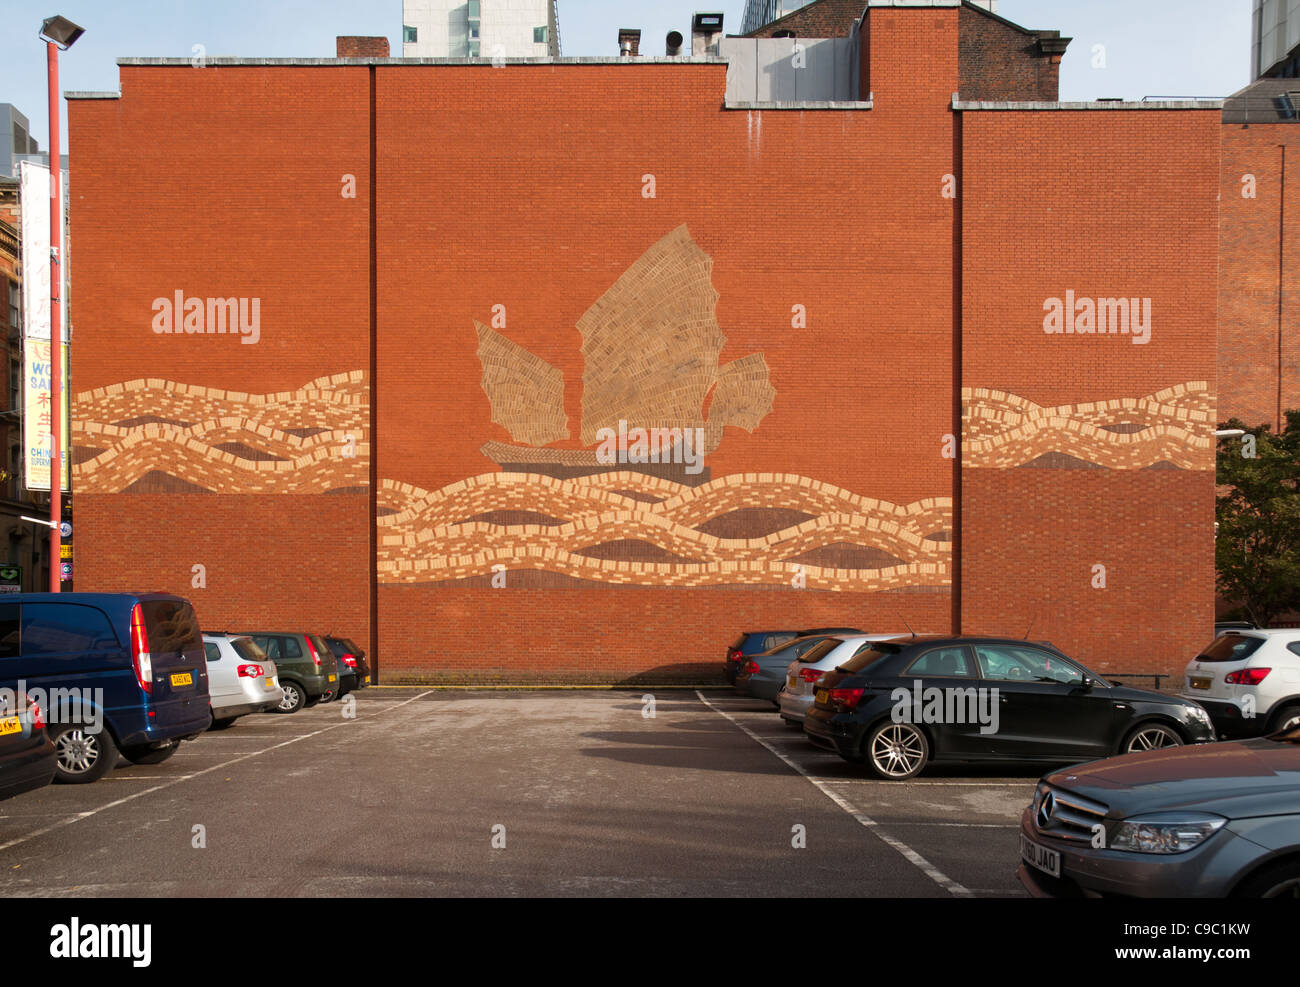 Brick mural of a Chinese junk on the wall of a car park, Chinatown, Manchester, England, UK - Stock Image